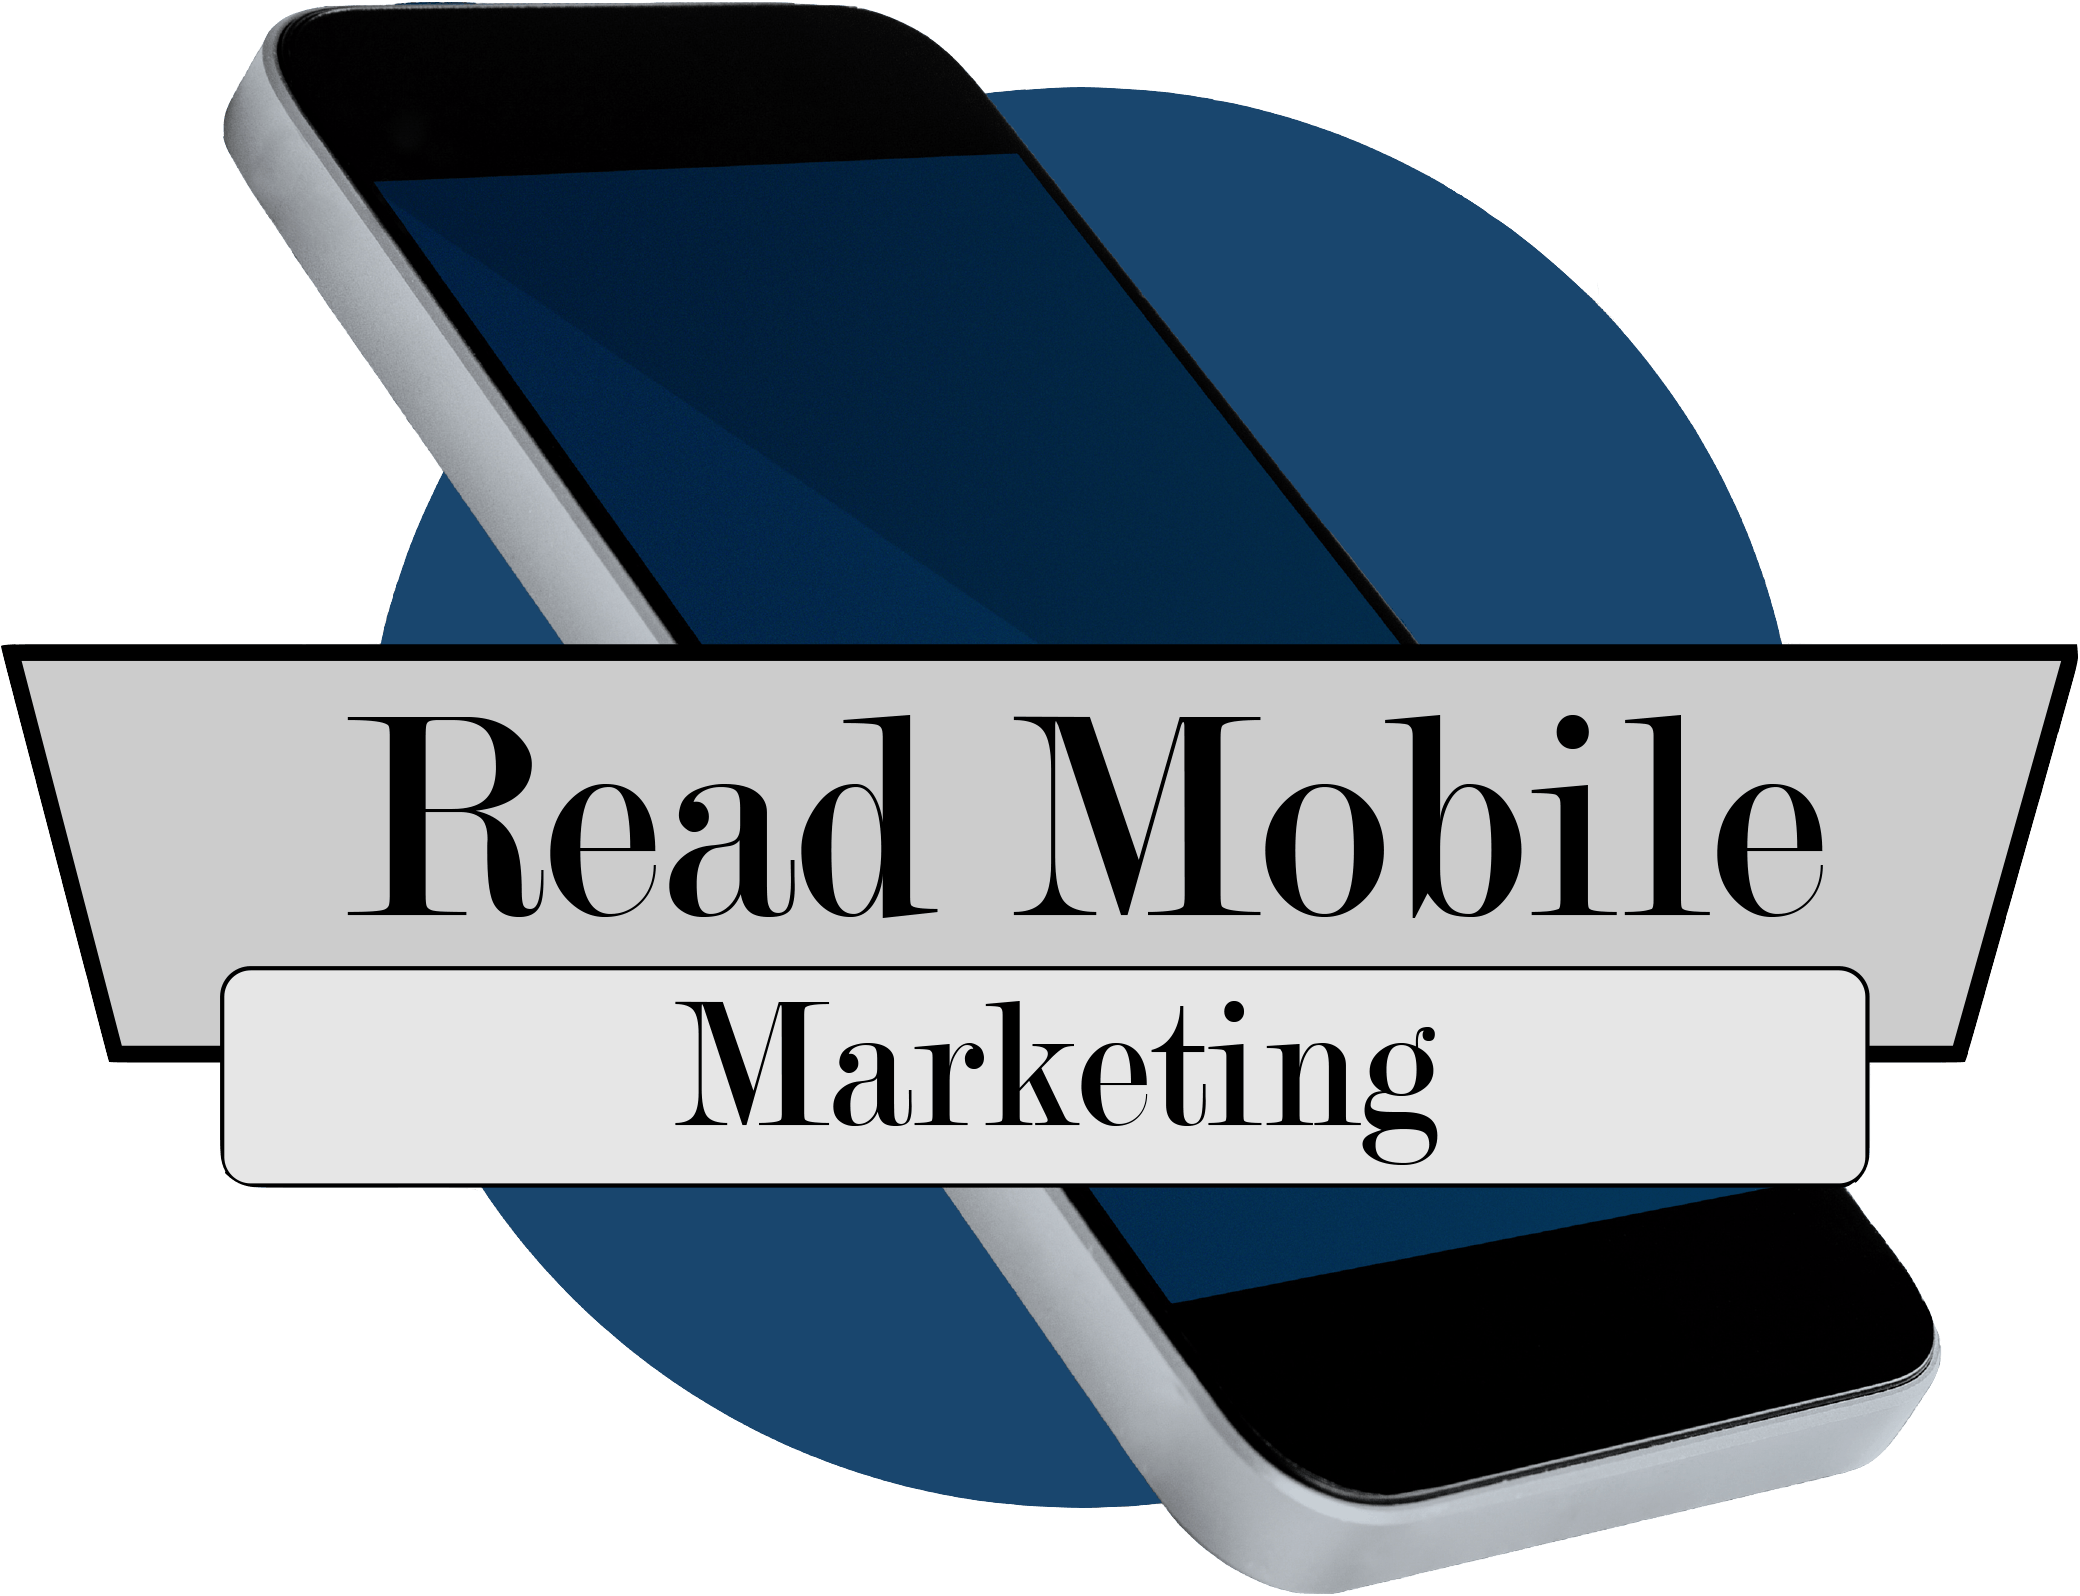 Read Mobile Marketing